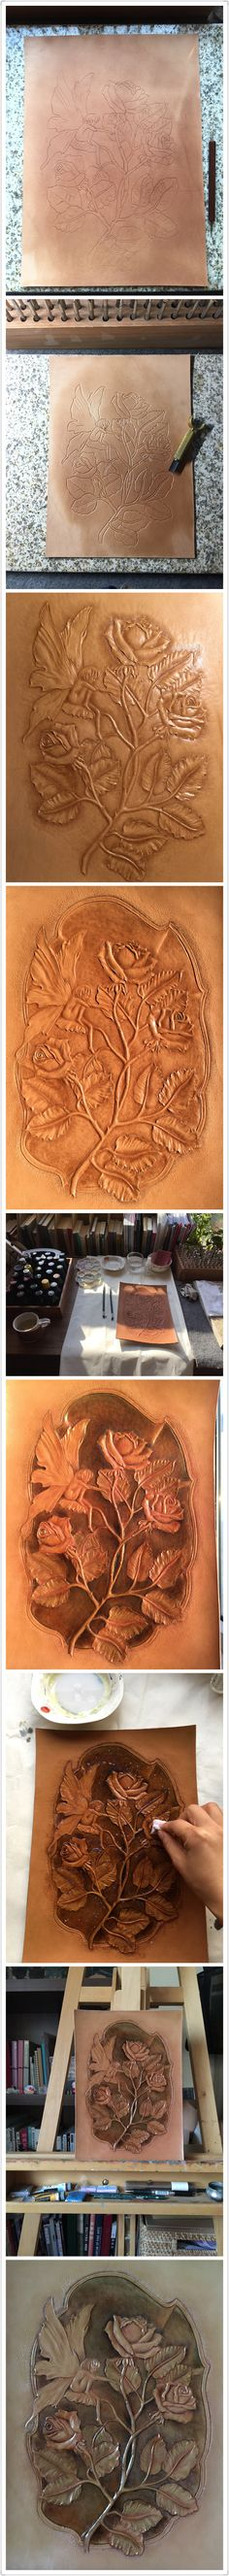 The procedure of rose garden carving #leather #leather carving